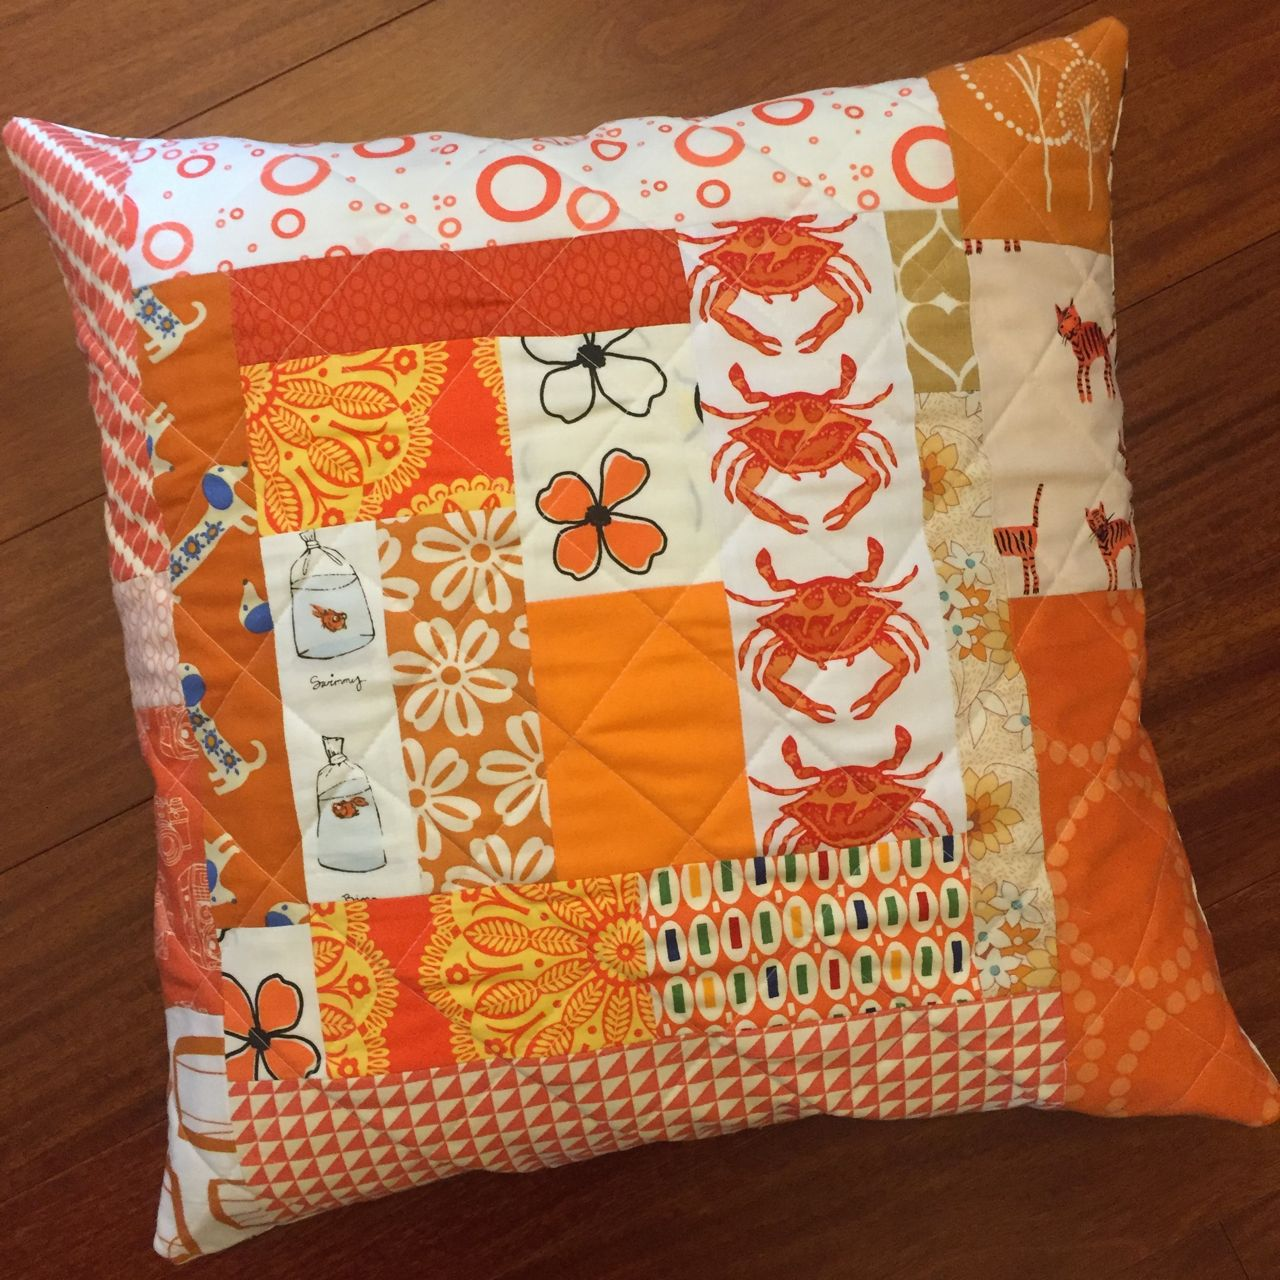 Quilted Cushions - Sew Delicious : quilted cushions - Adamdwight.com